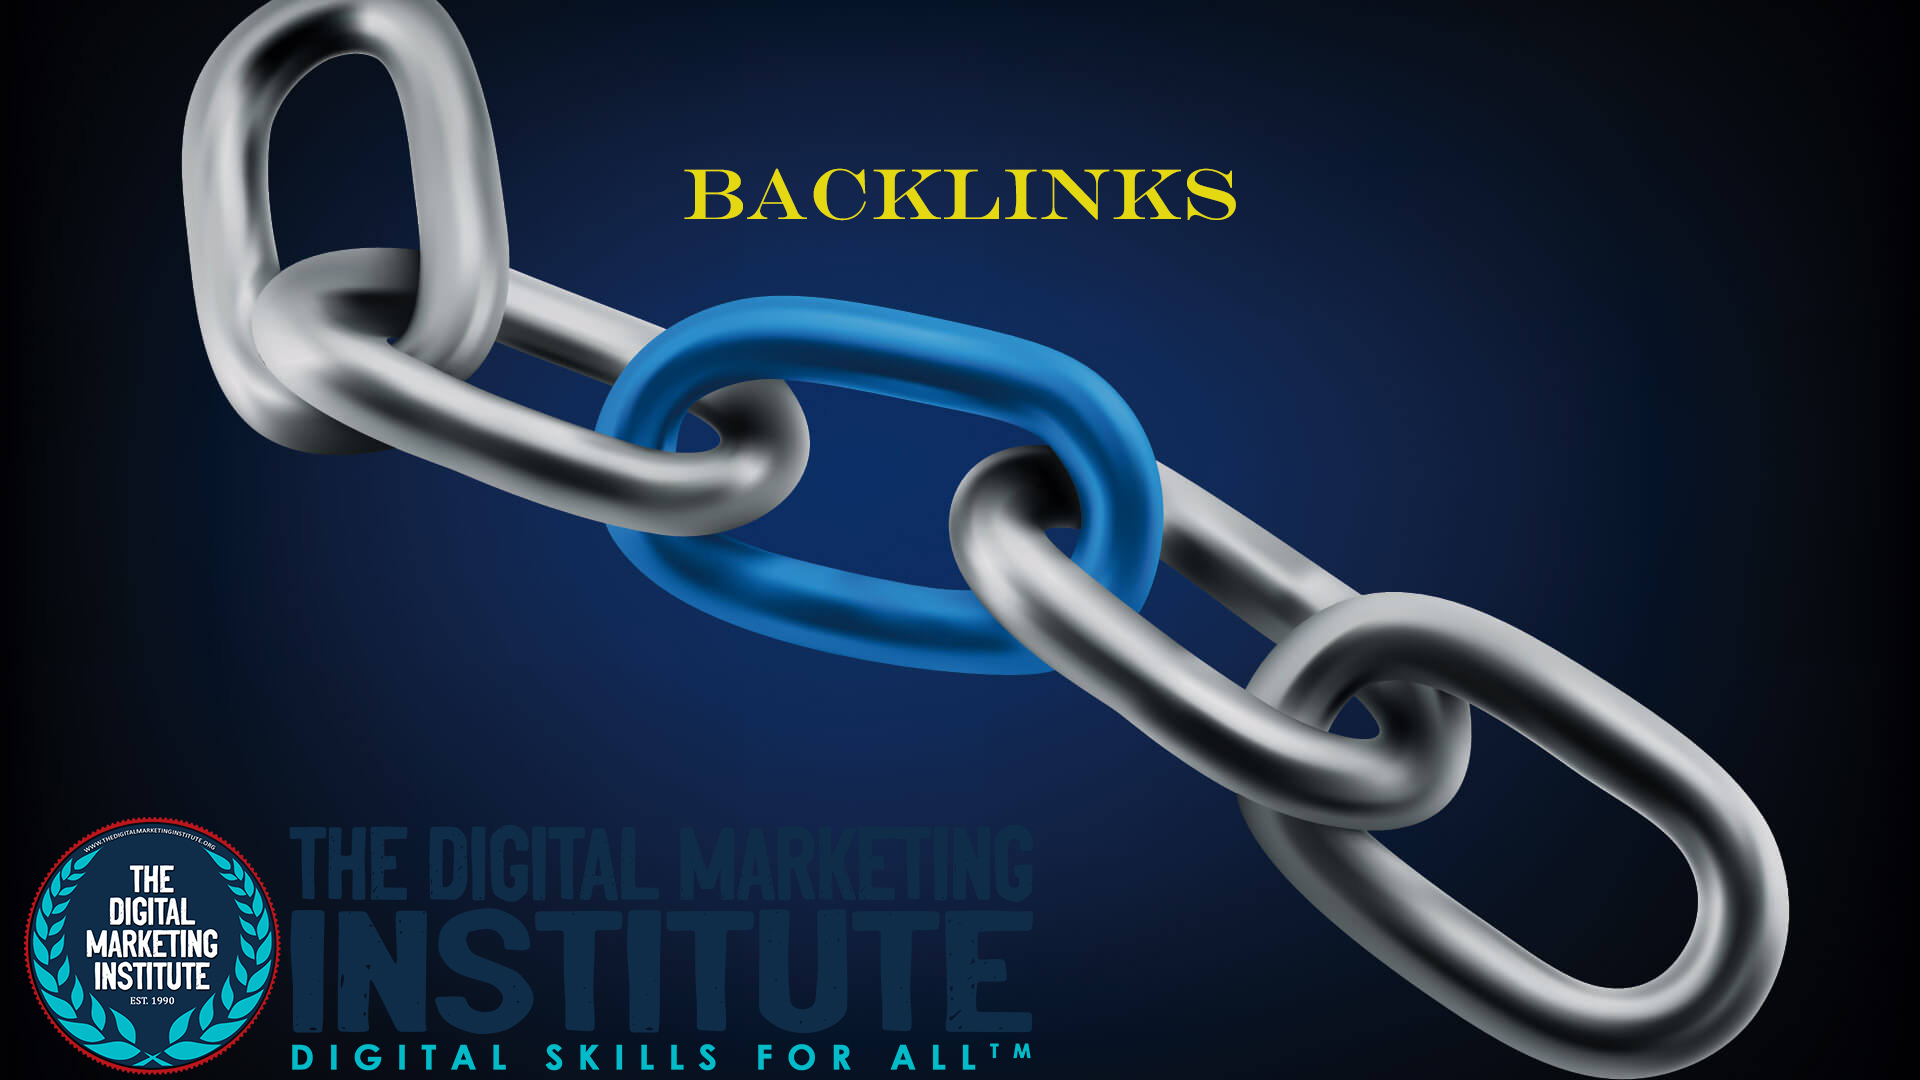 What are Backlinks and why are they are important for your SEO and DMI?